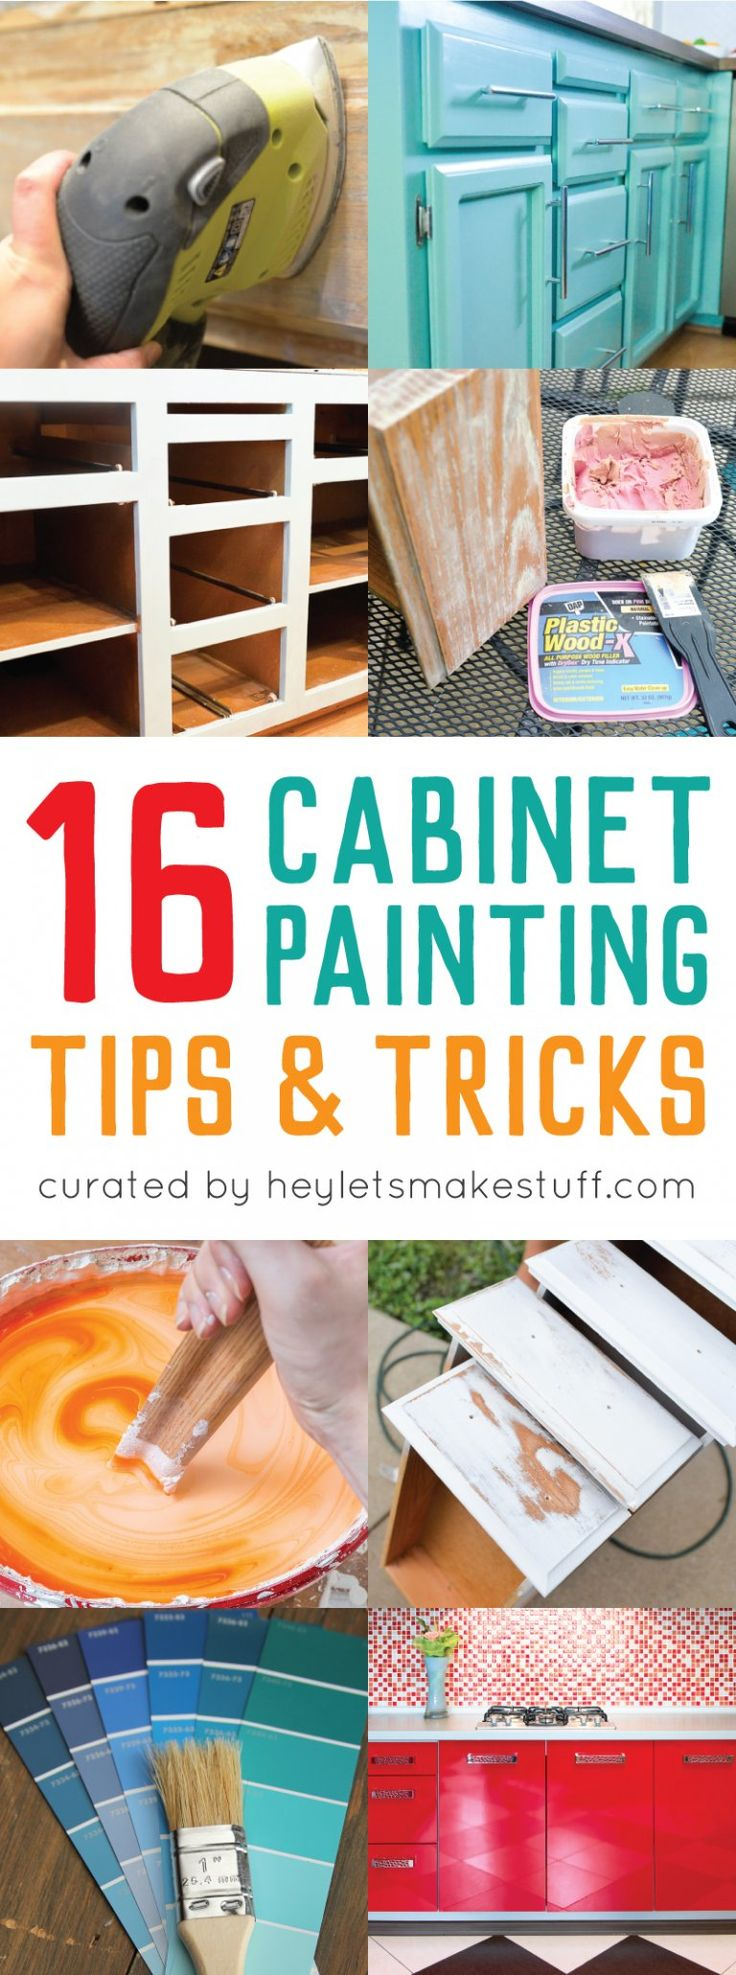 16 cabinet painting tips and tricks - Professional Painting Kitchen Cabinets